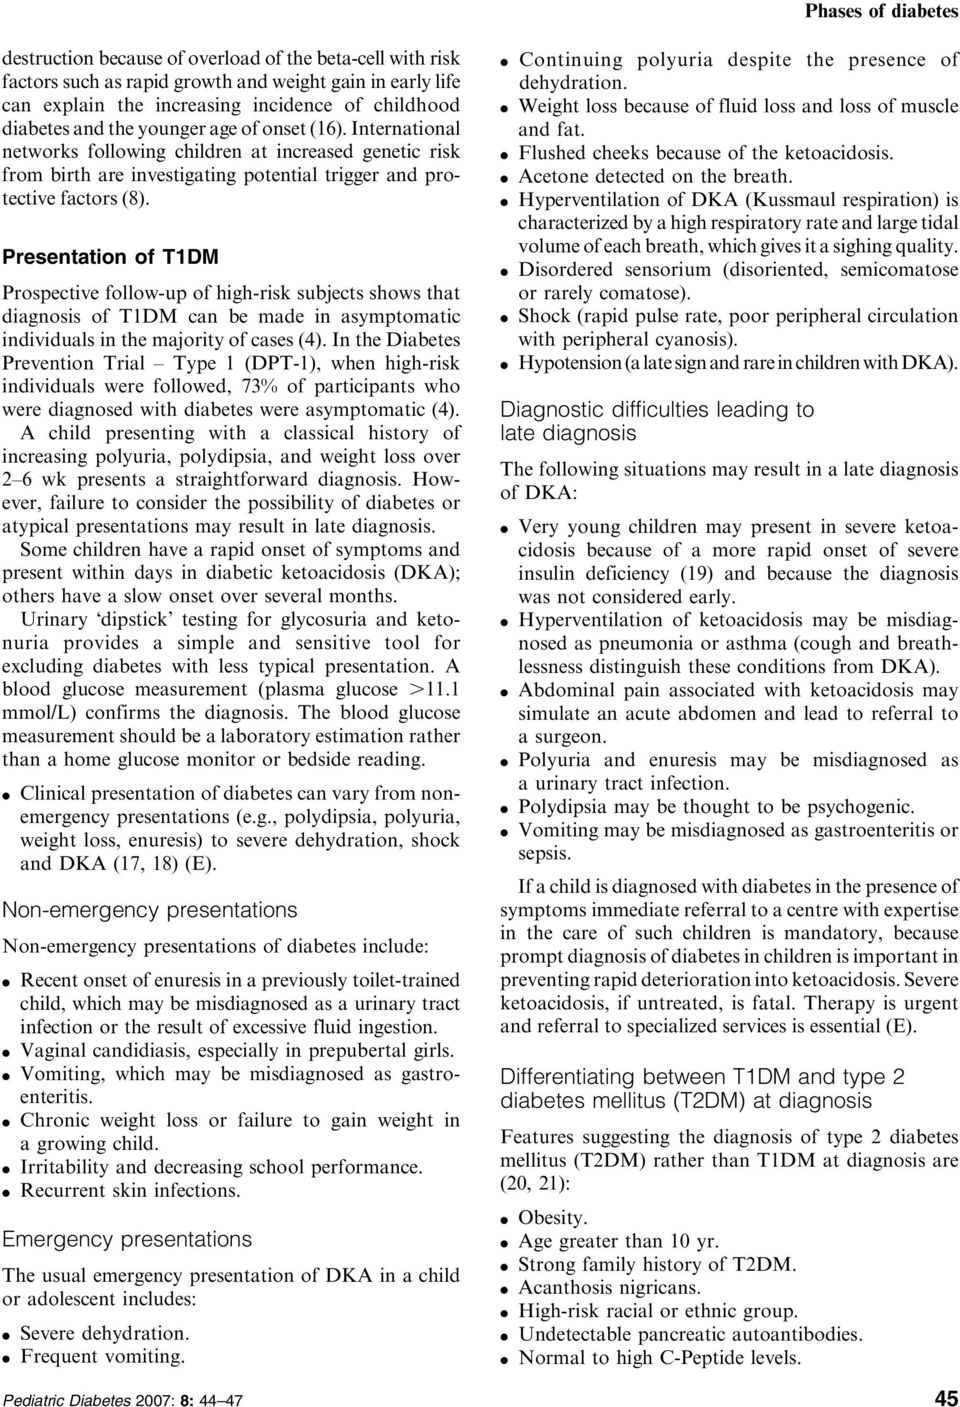 Presentation of T1DM Prospective follow-up of high-risk subjects shows that iagnosis of T1DM can be mae in asymptomatic iniviuals in the majority of cases (4).